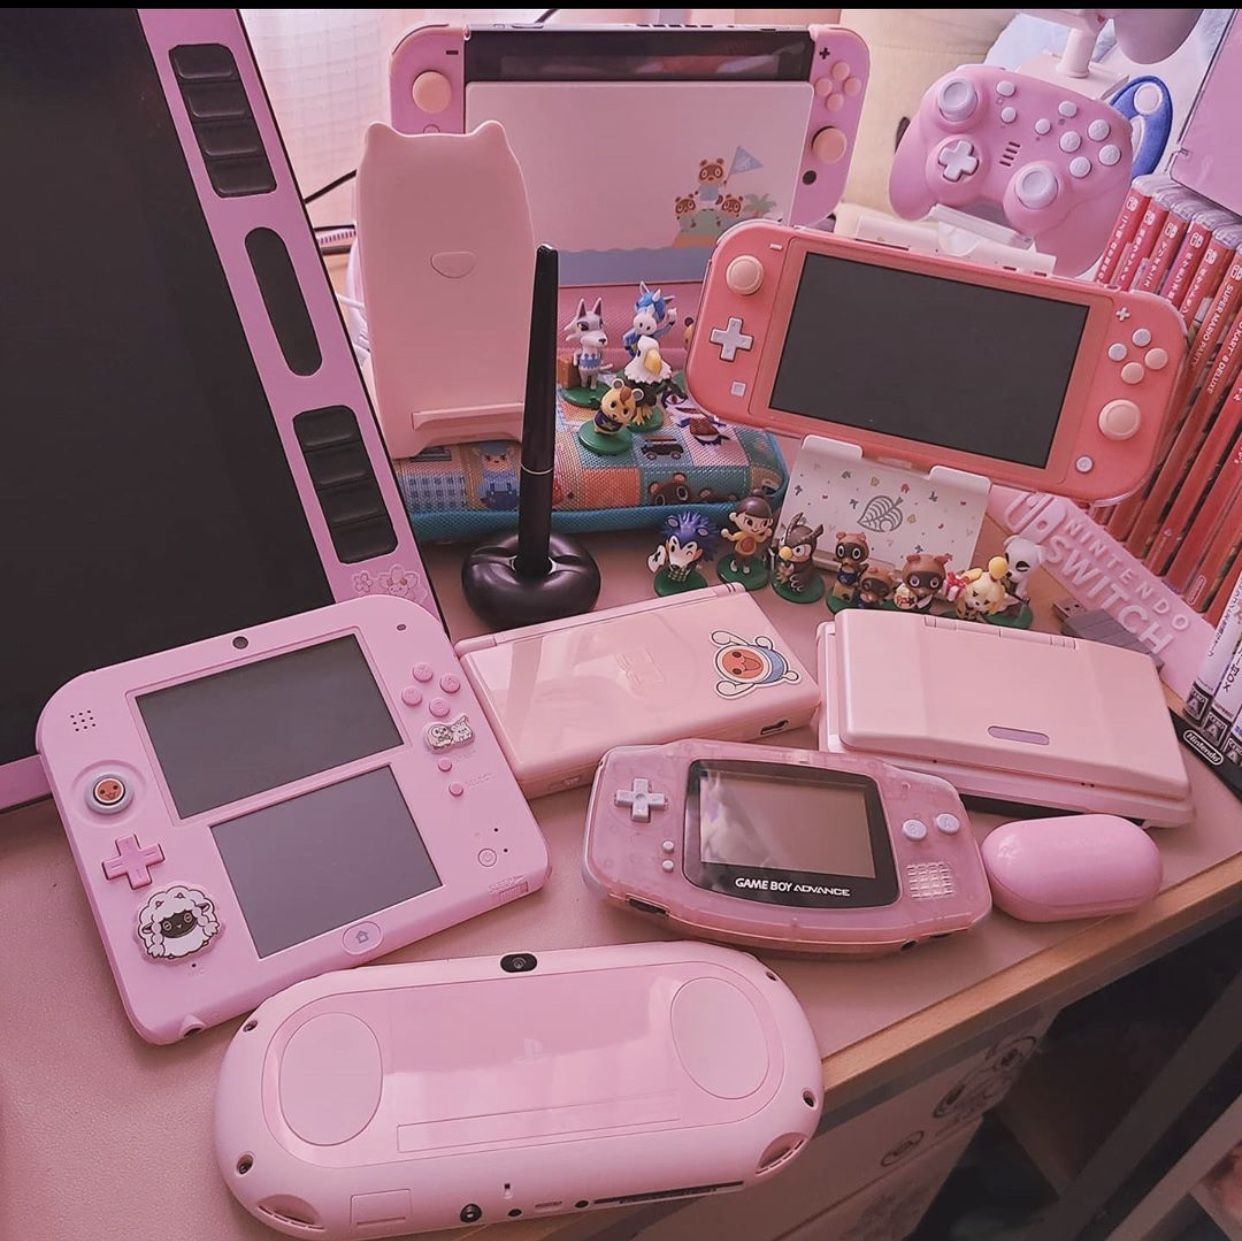 Pin By Theresa On Pretty In Pink Game Room Design Video Game Room Design Kawaii Room